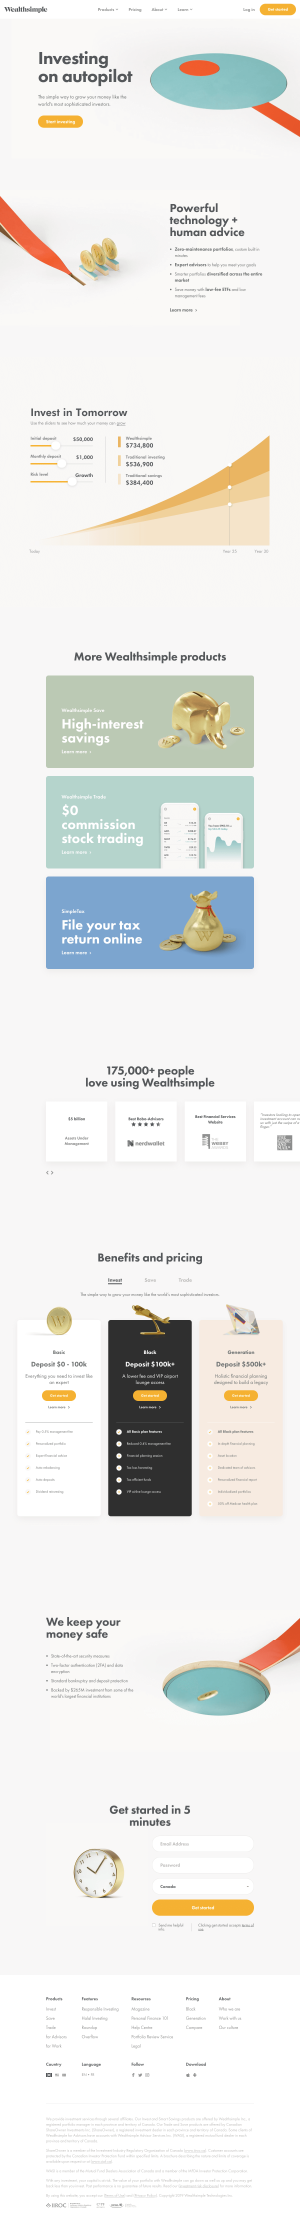 Wealthsimple - Homepage